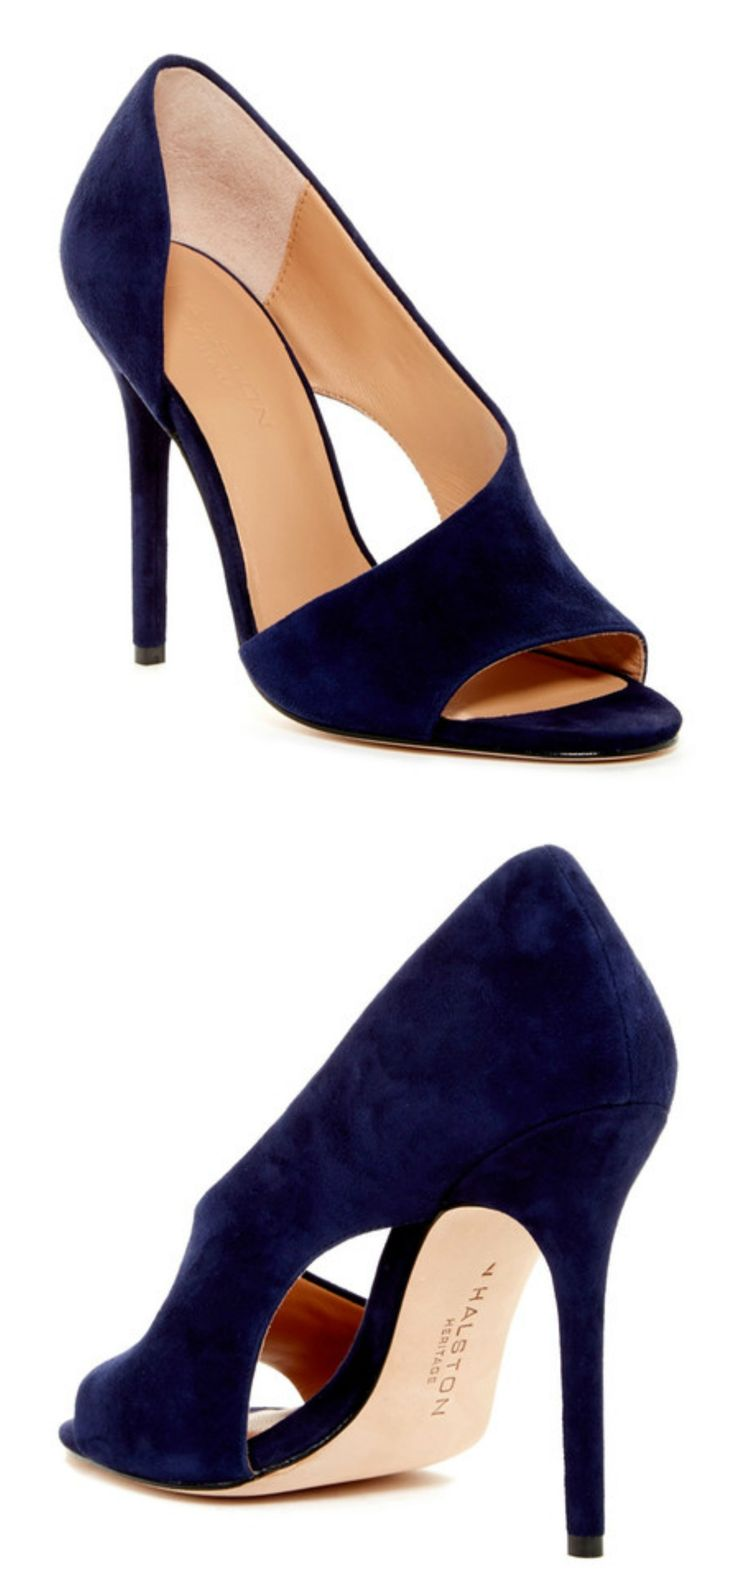 Navy Suede Pumps from Halston. INCREDIBLE price!! Hurry..they are selling out fast! @NordstromRack | #NordstromRack